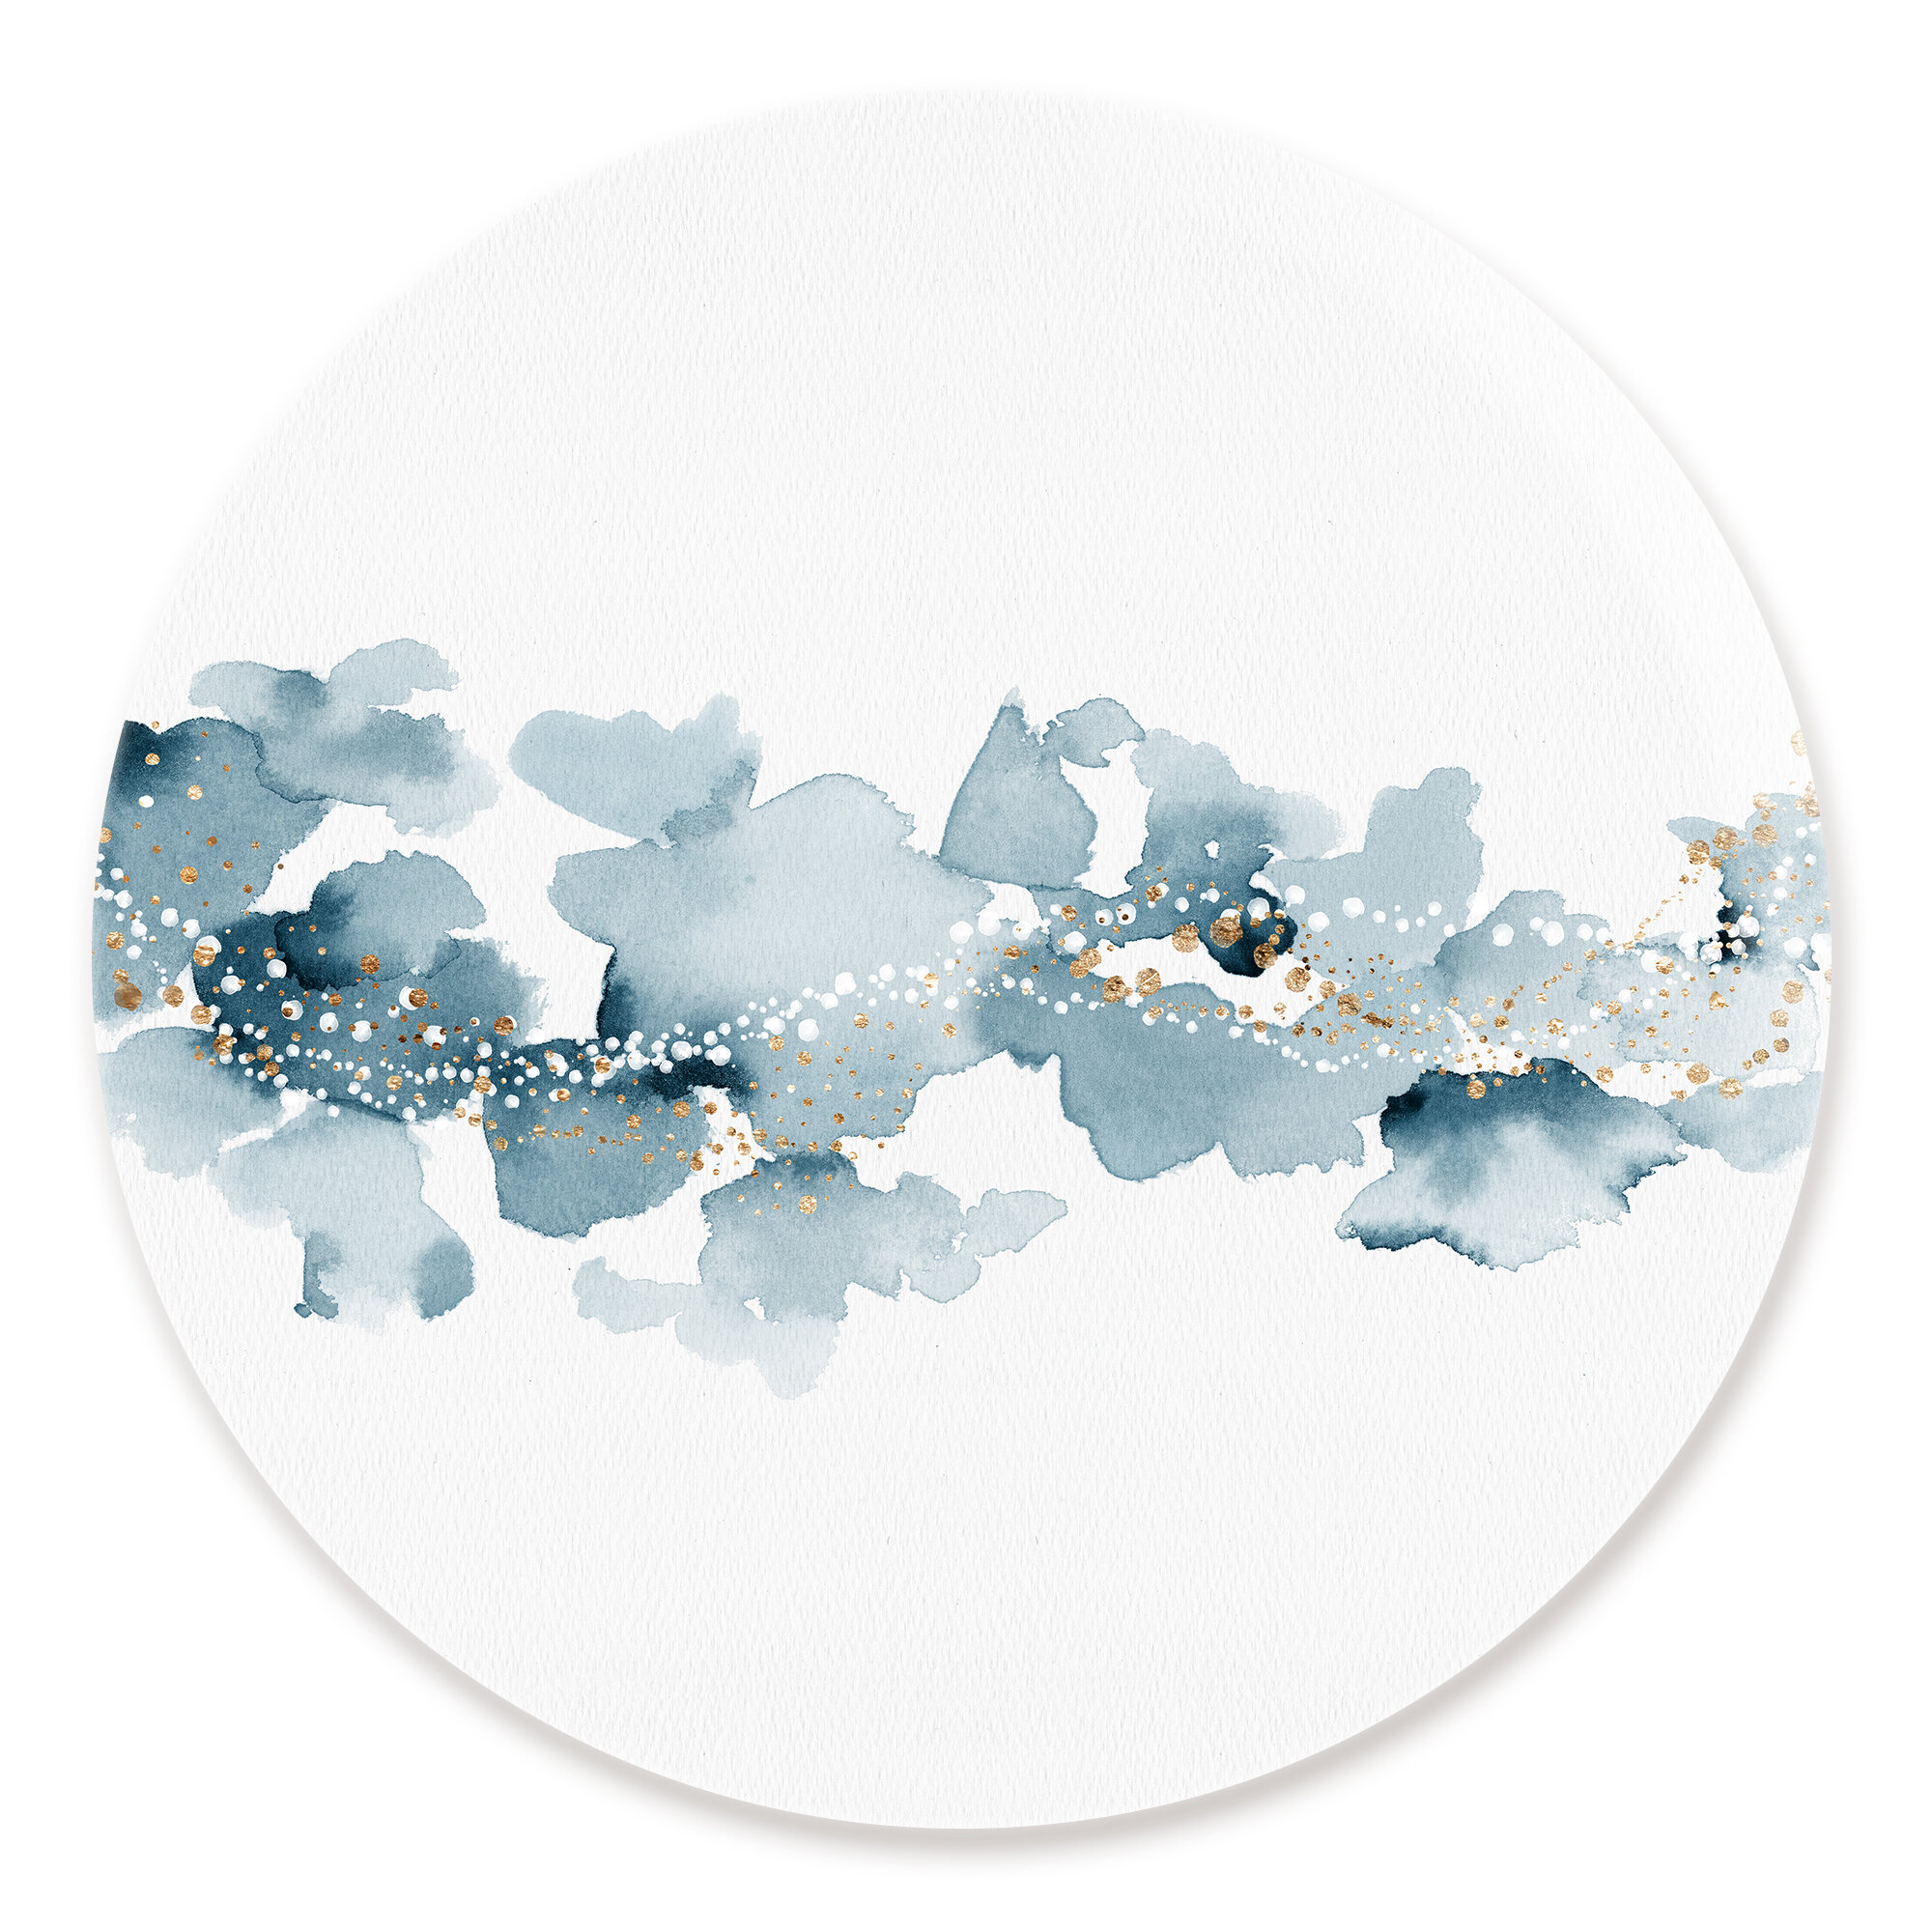 Bronx Blue Bedroom Project: Ivy Bronx 'Blue Cloud Sky' Watercolor Painting Print